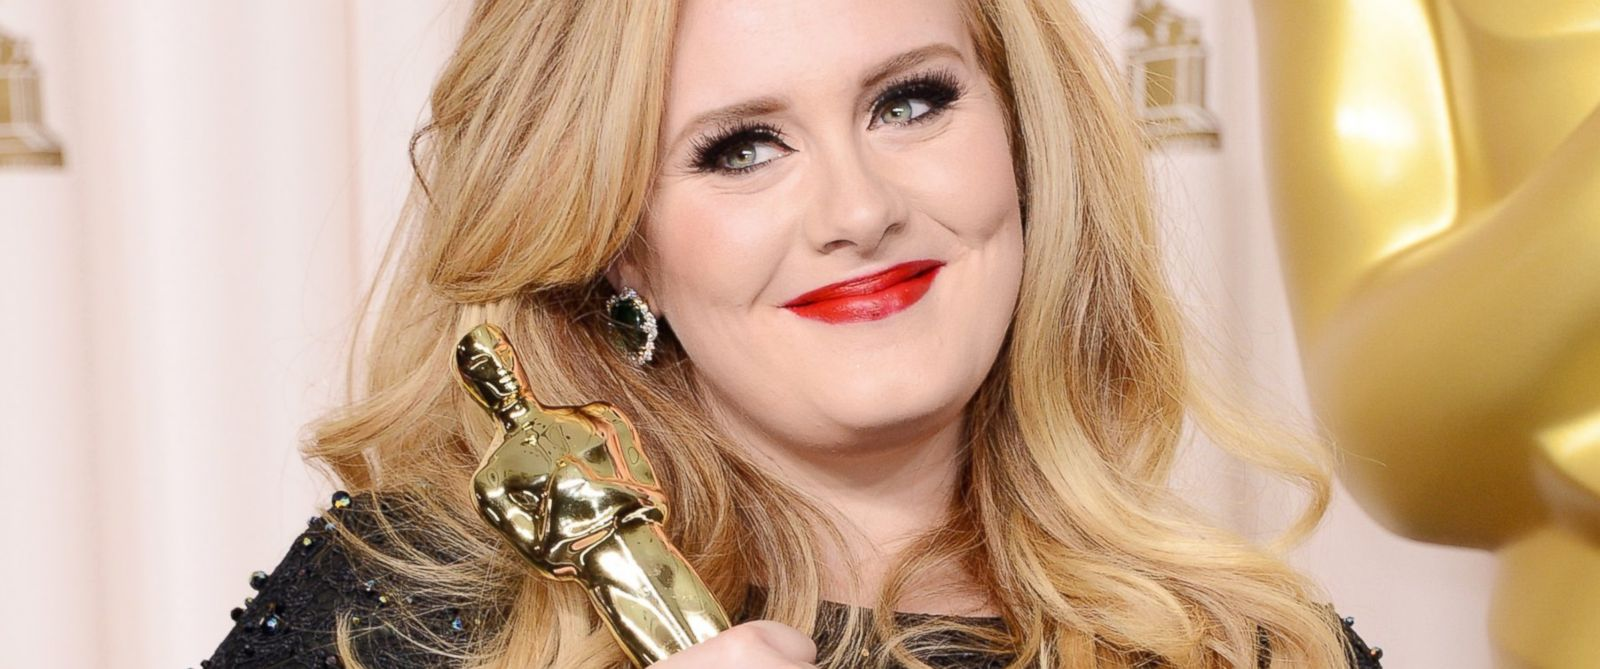 PHOTO: Adele poses in the press room during the Oscars, Feb. 24, 2013 in Hollywood, Calif.